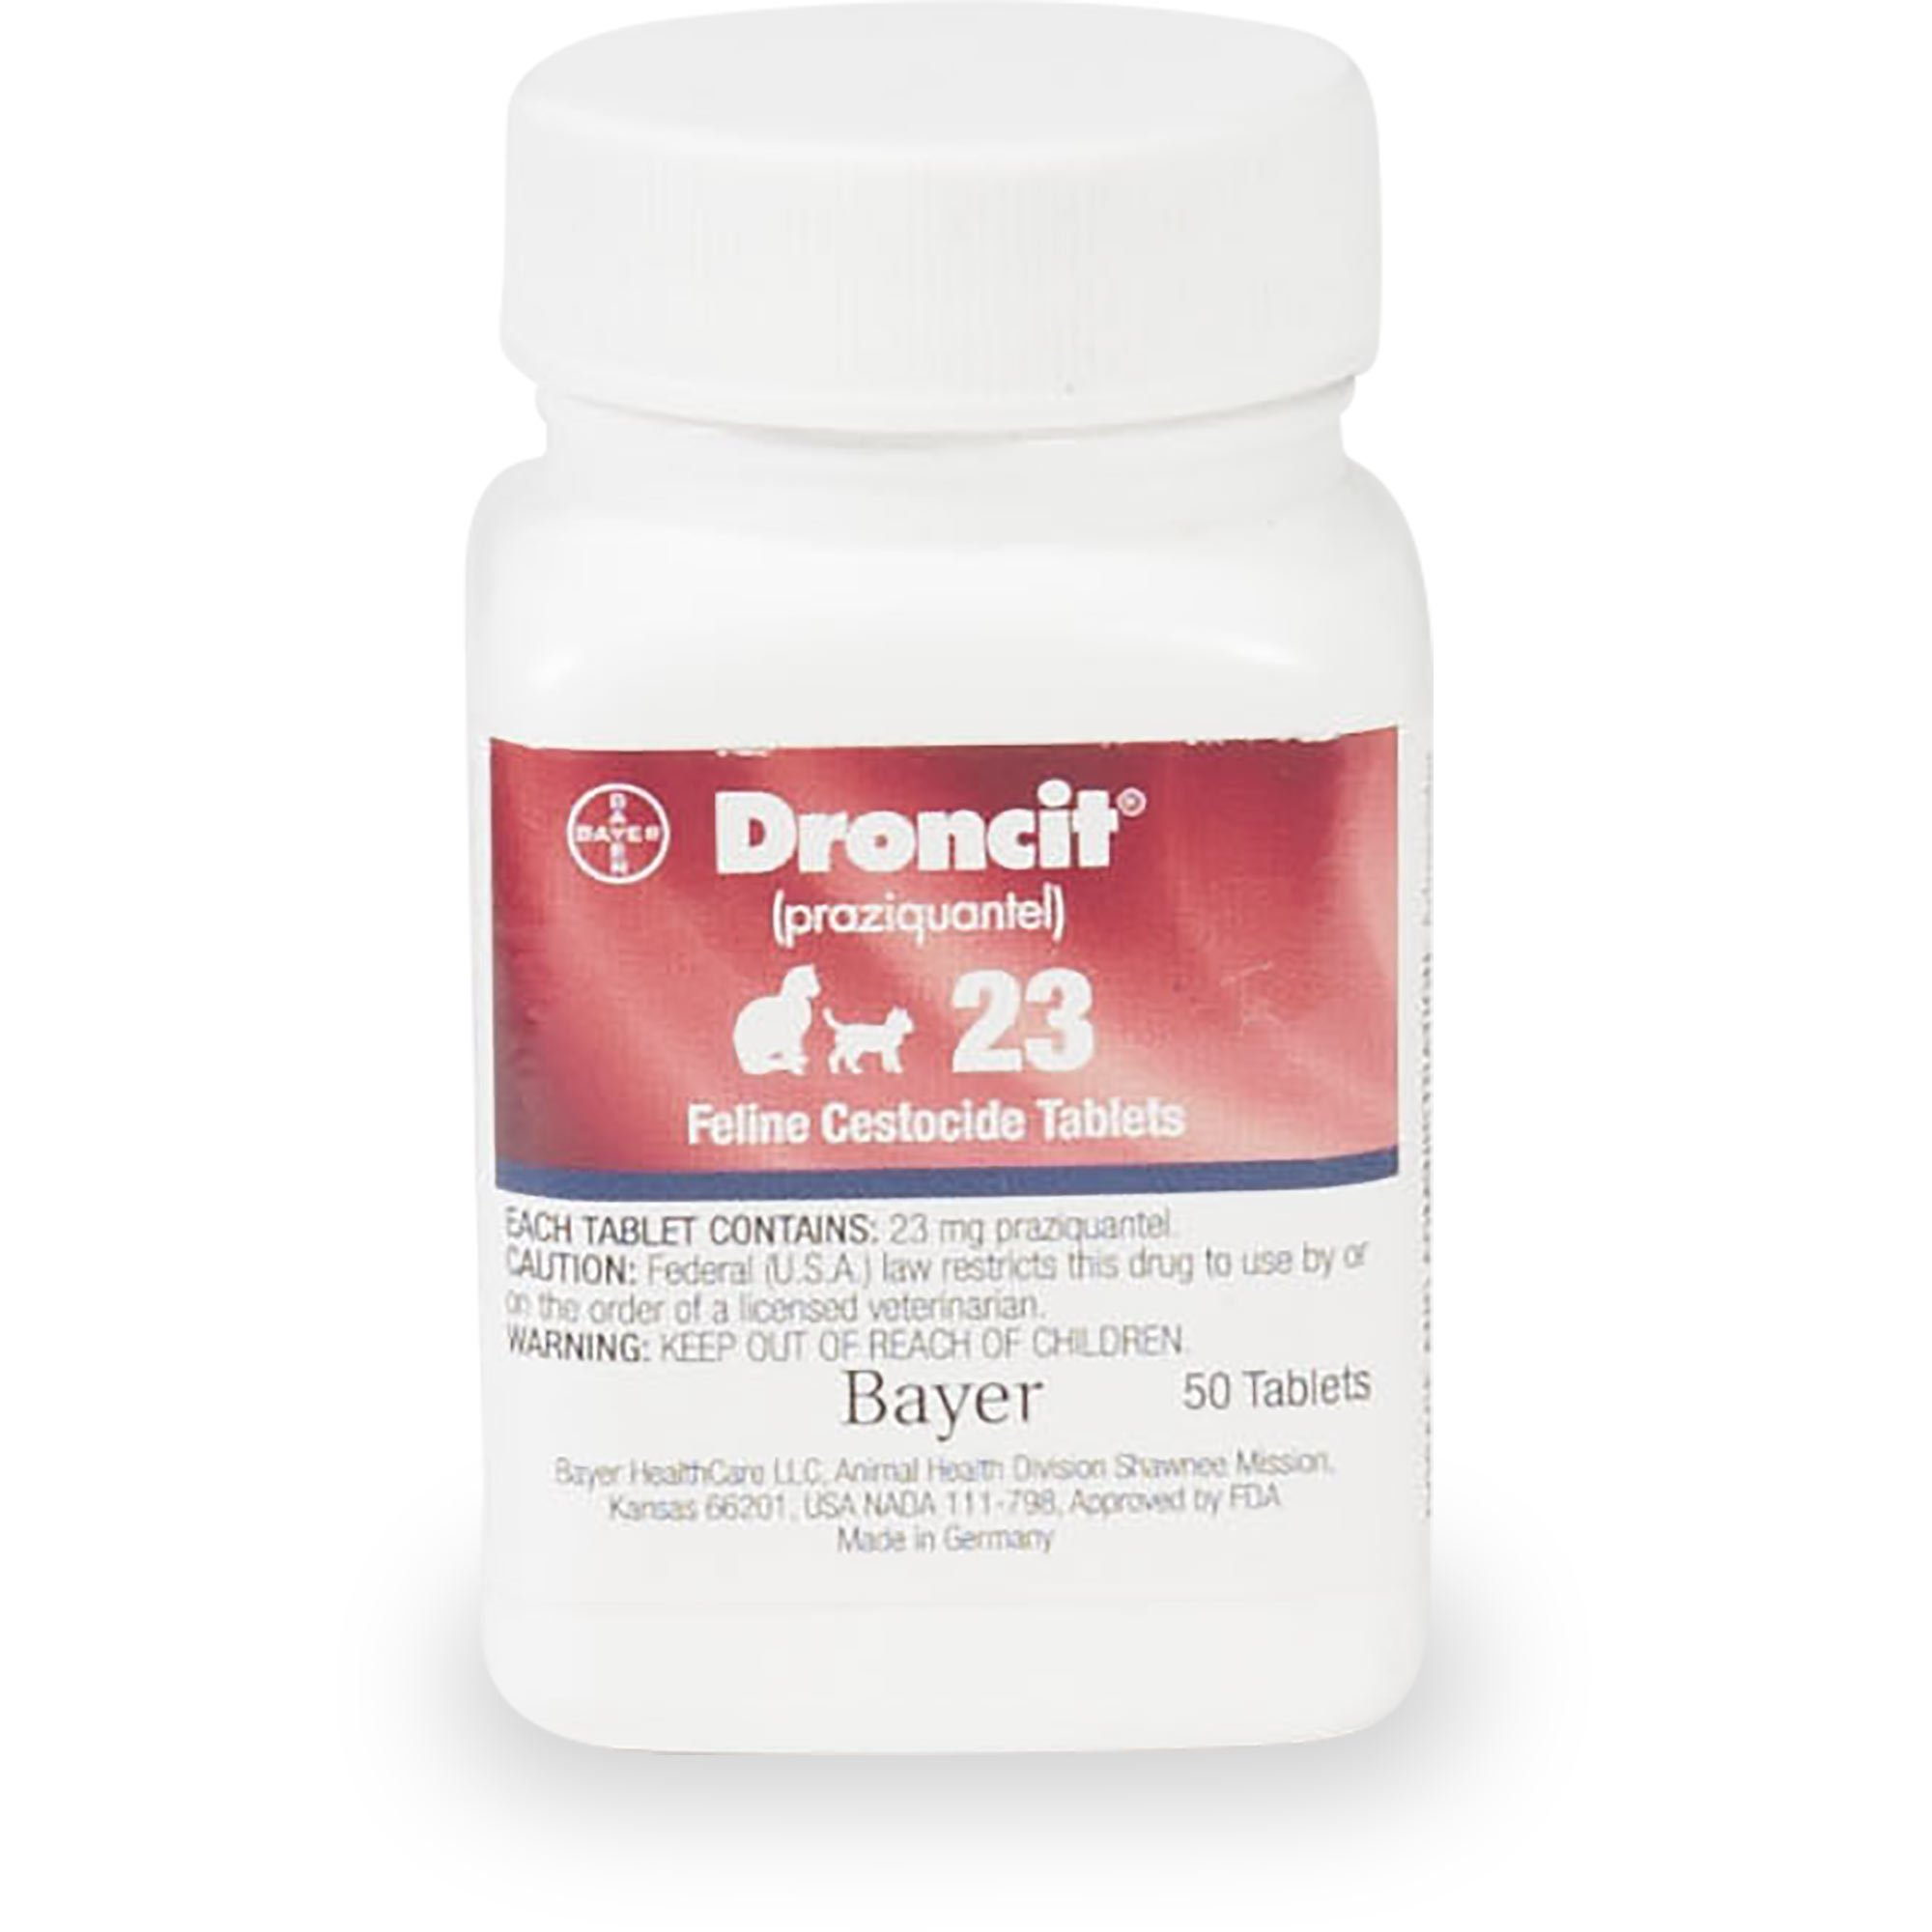 Droncit 23 mg Tablets for Cats | Petco